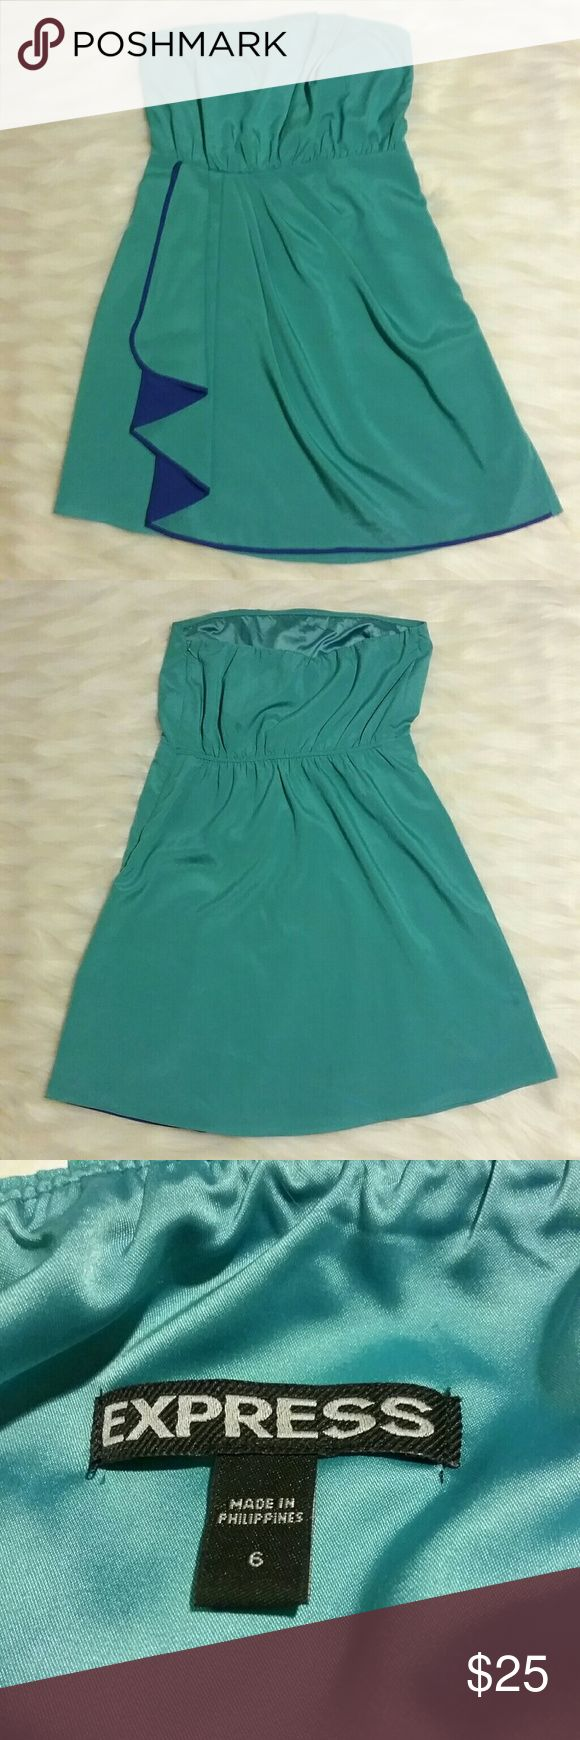 Express Semi-formal dress Beautiful, strapless Semi-formal green (& blue) dress. Excellent condition. Width at top of dress: 15 inches Length: 27 inches Express Dresses